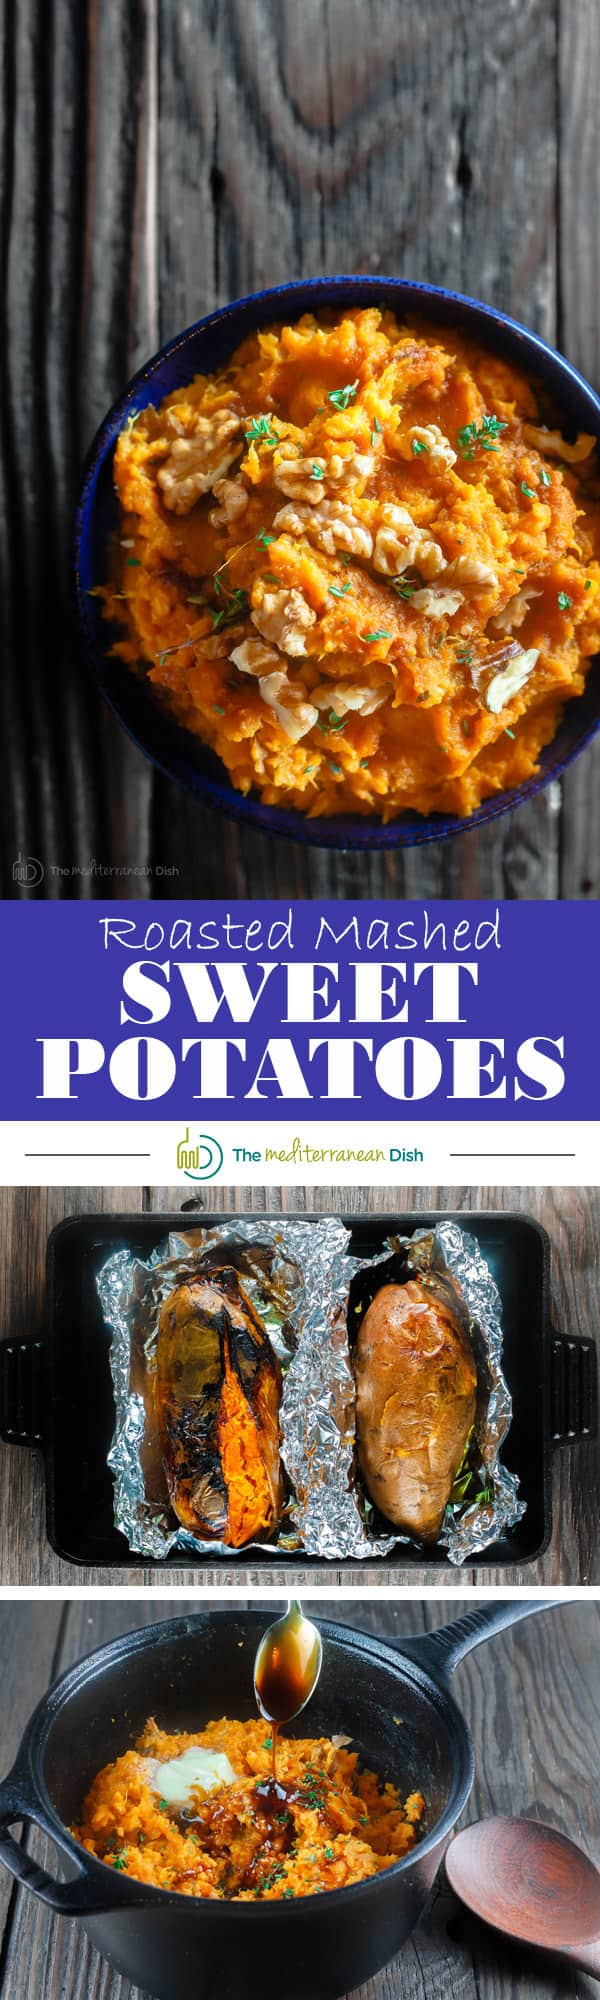 Roasted Mashed Sweet Potatoes with Thyme and Molasses | The Mediterranean Dish. Do not hide your mashed sweet potatoes underneath marshmallows. Try this simple, rustic and flavor packed mashed sweet potatoes instead. The perfect Thanksgiving dish.